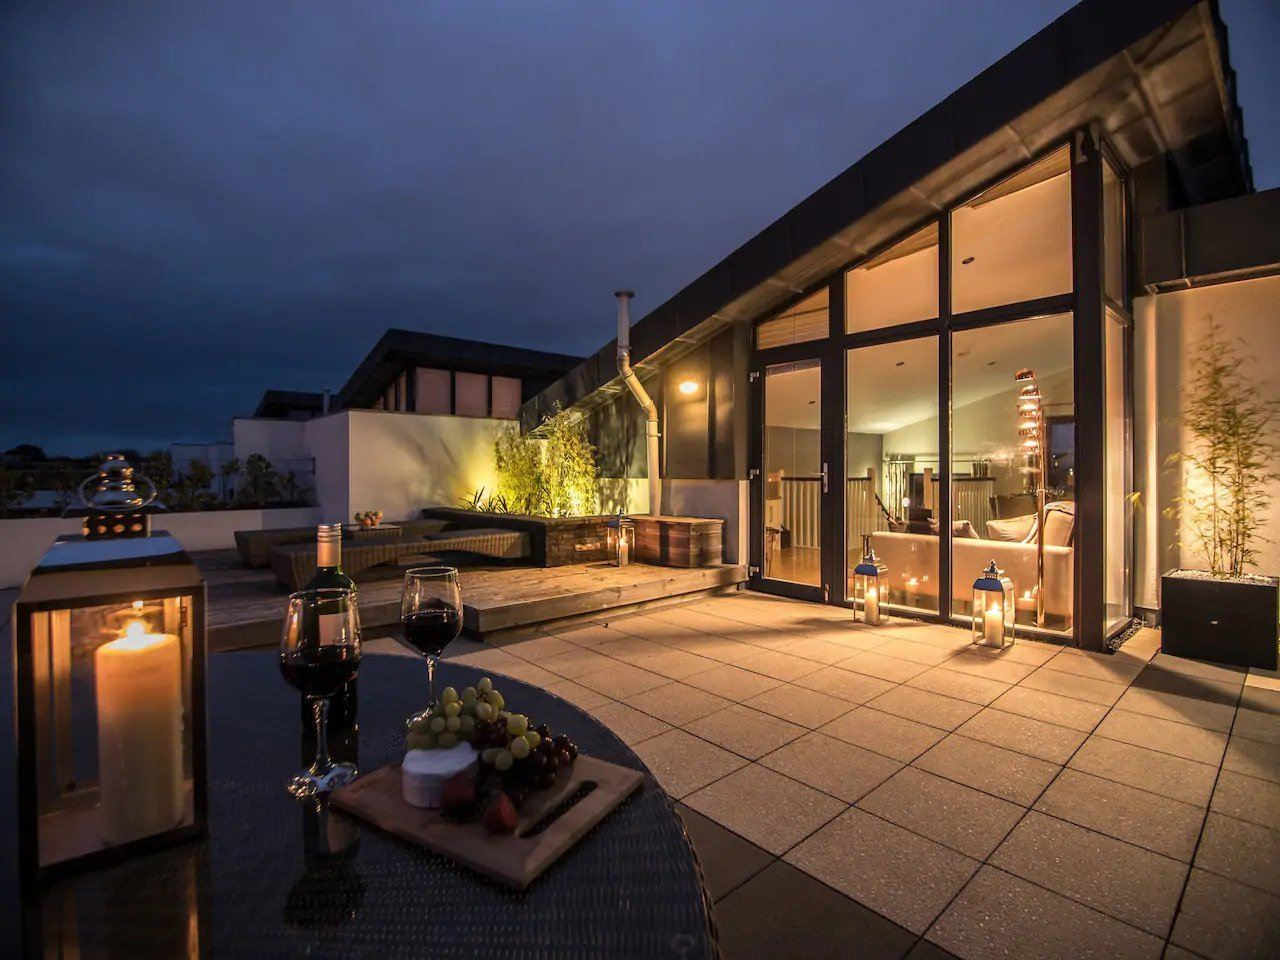 penthouse airbnb galway